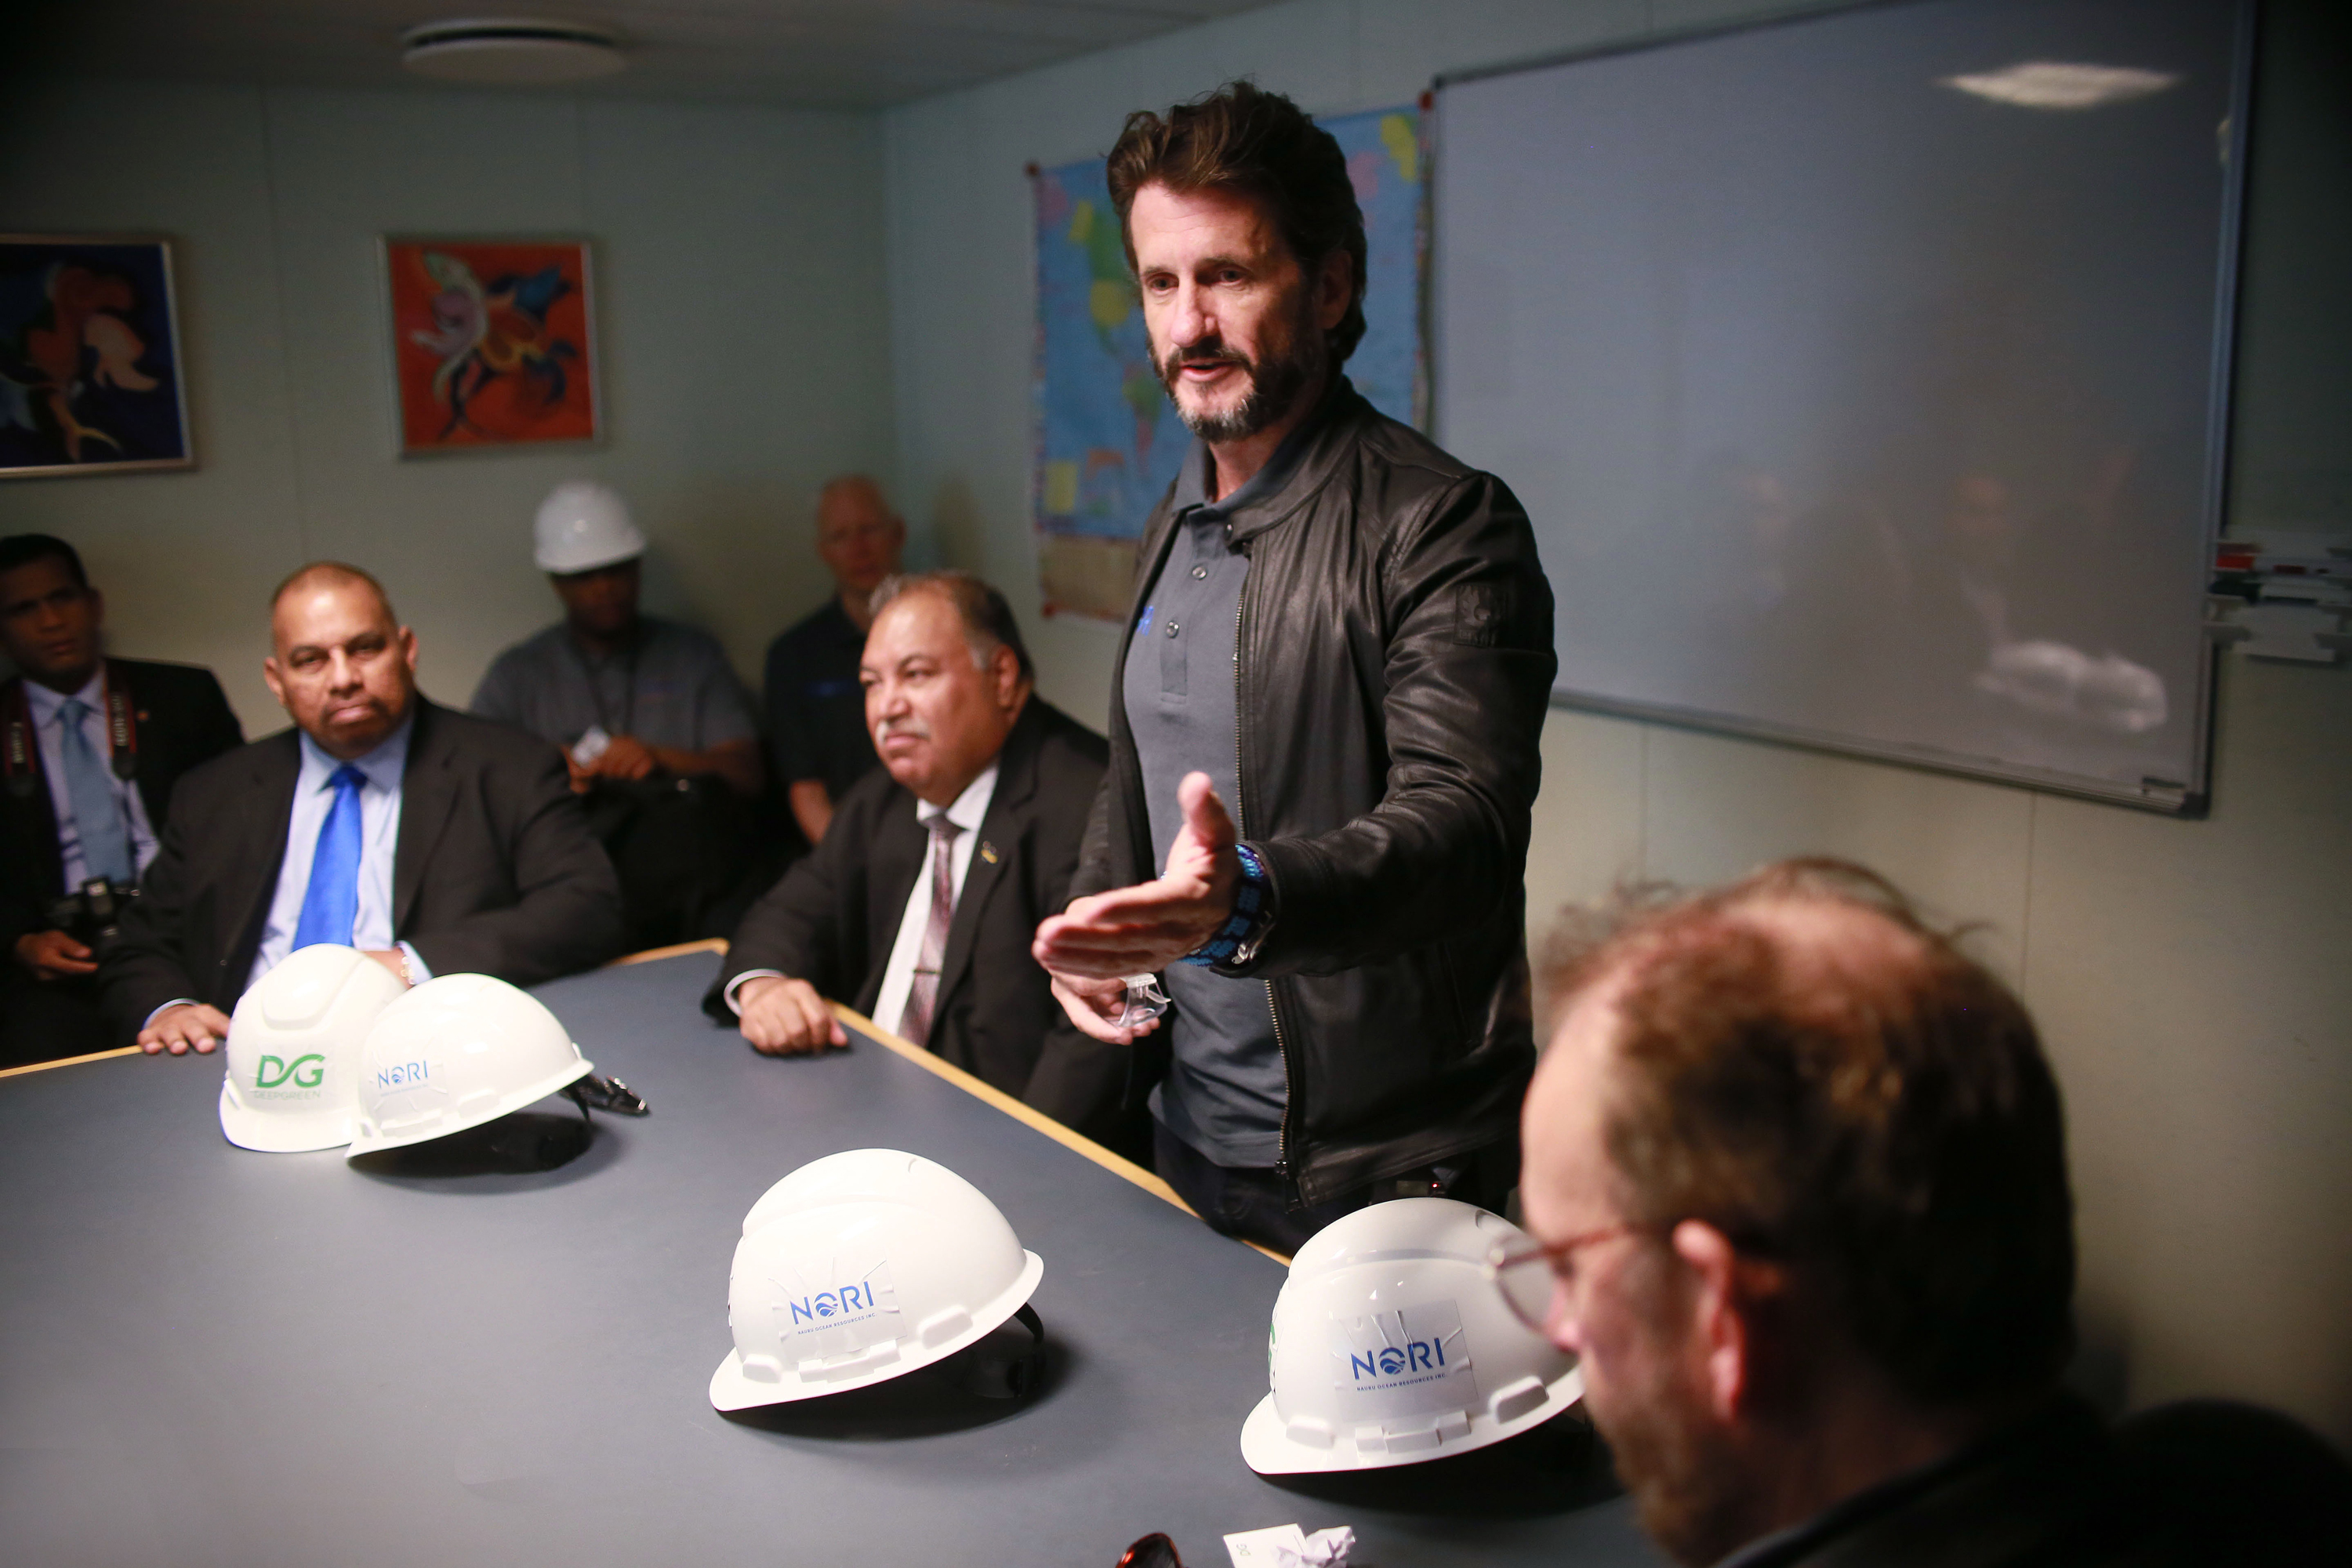 DeepGreen CEO Gerard Barron, standing, speaks to Nauru President Baron Waqa, to his immediate right, and others in Nauru in April 2018. DeepGreen has a partnership with the small Pacific country that enables the company to hunt for manganese nodules in the Clarion-Clipperton Fracture Zone. (Sandy Huffaker/Associated Press)